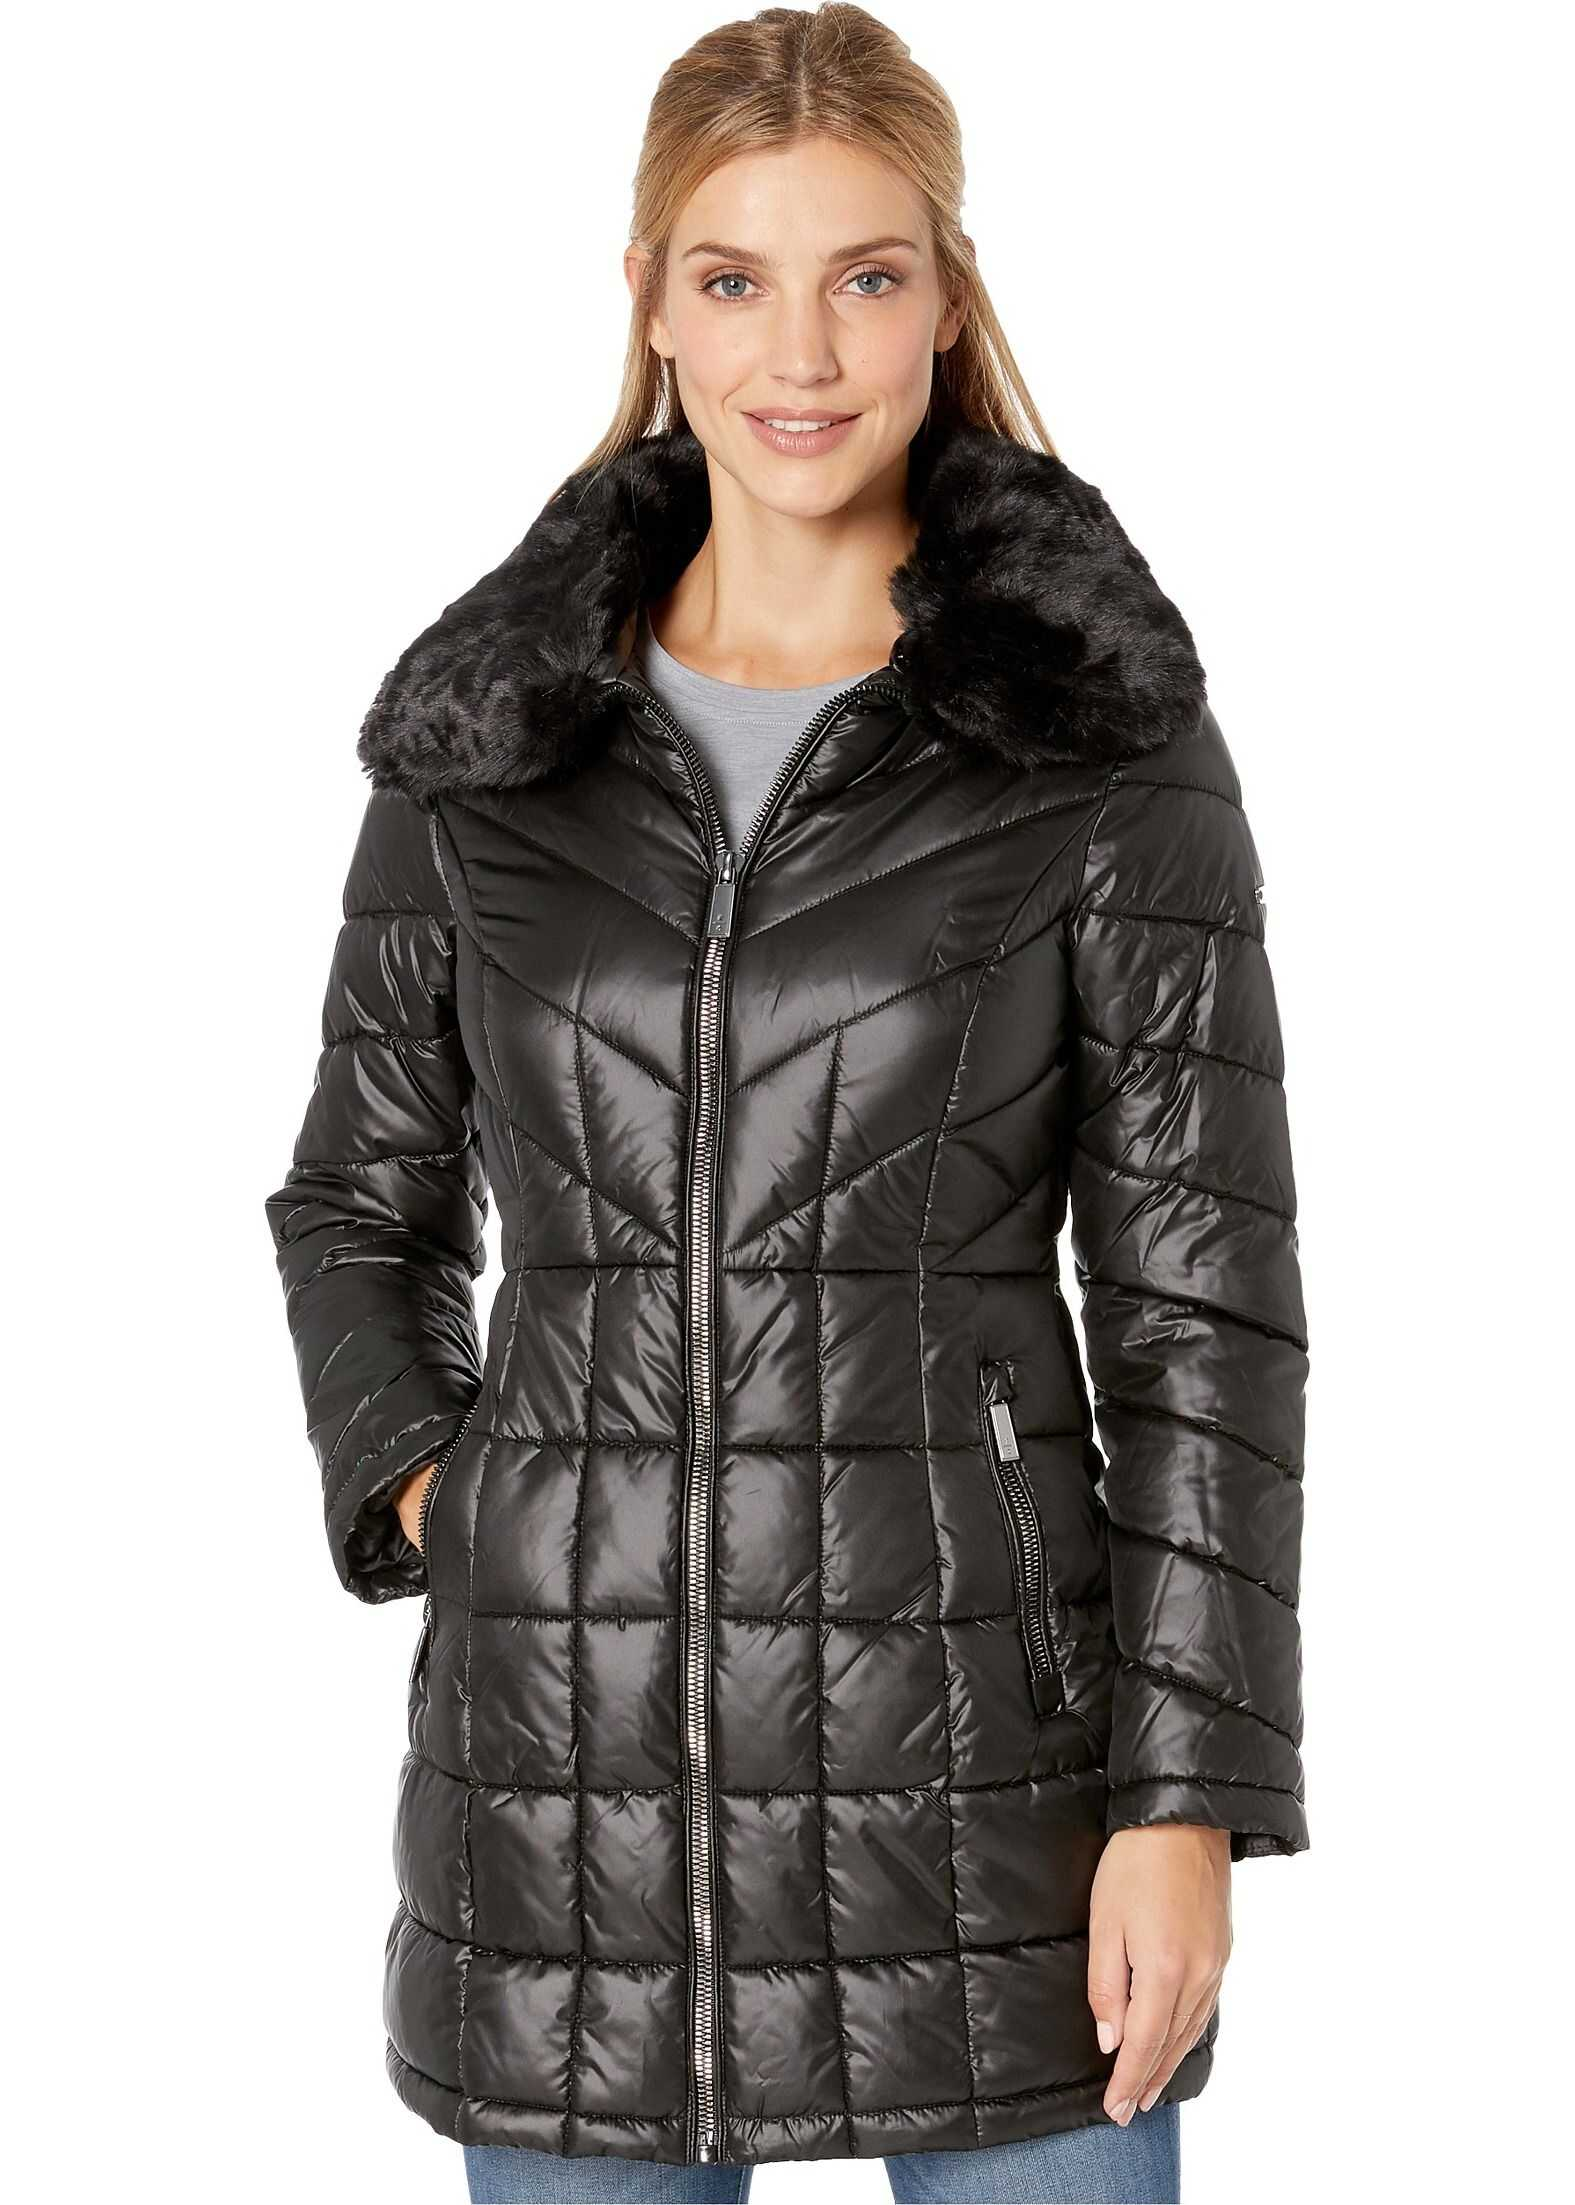 Kenneth Cole New York Zip Front Quilted Puffer w/ Faux Fur Trimmed Collar Black